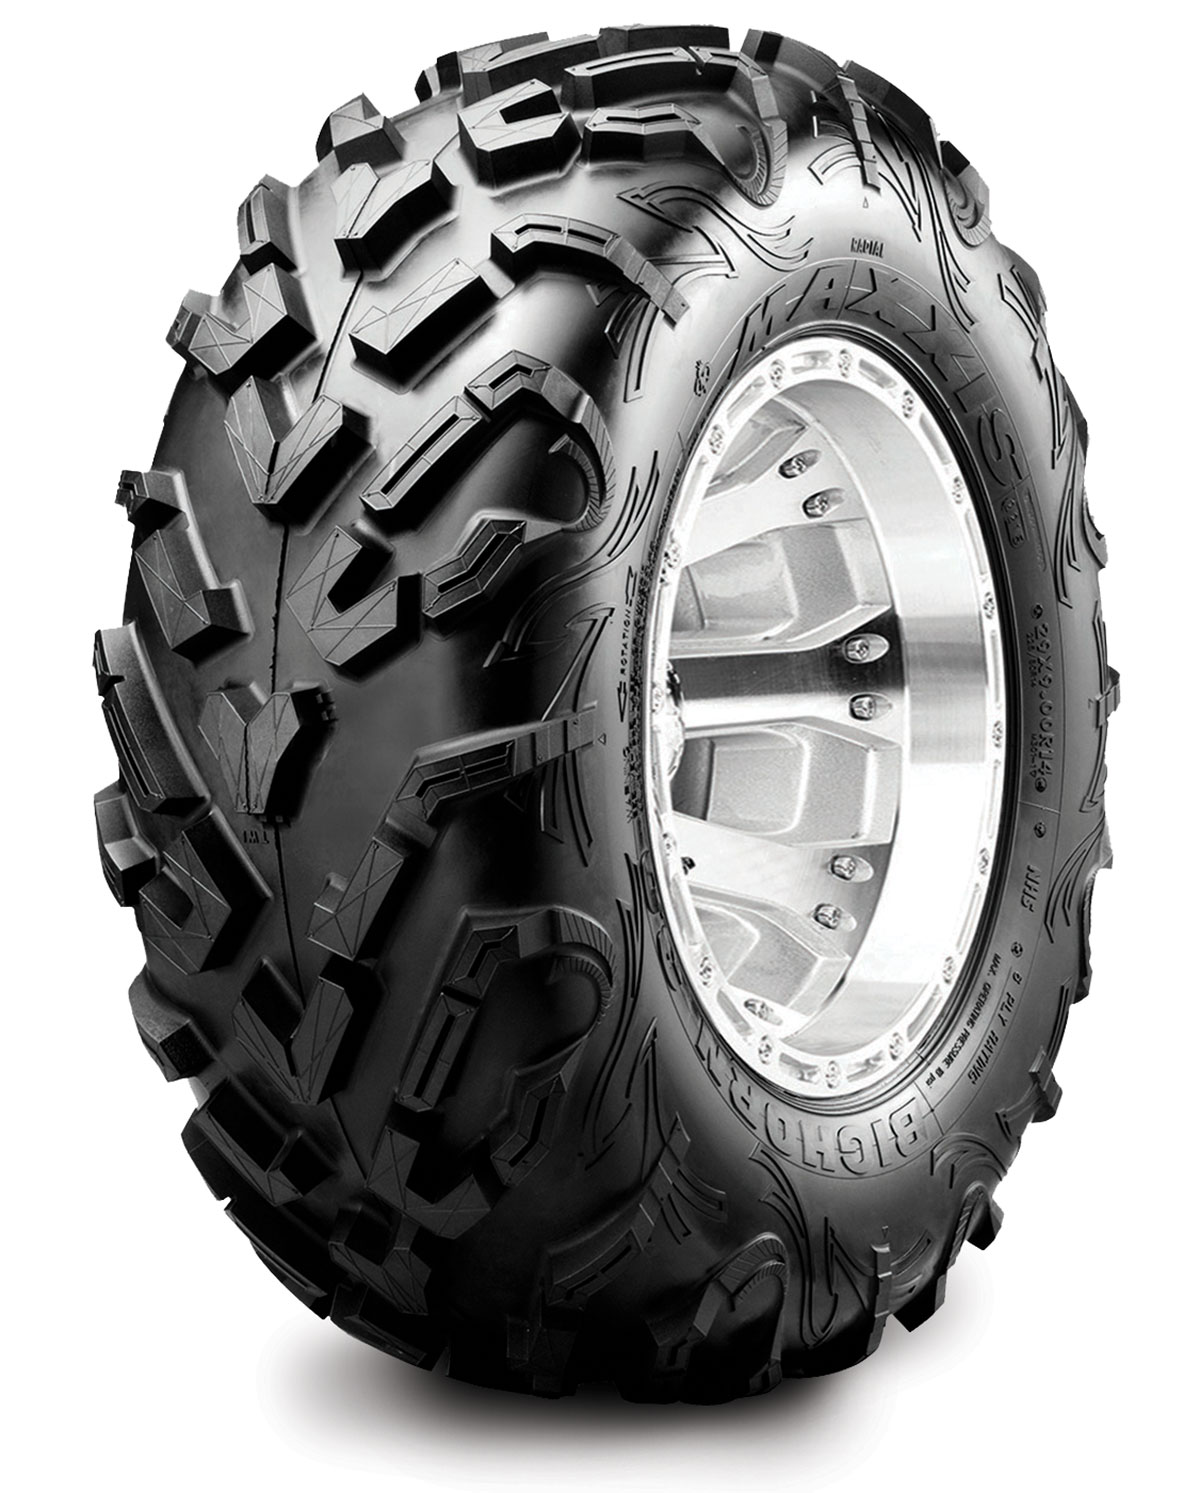 The front Maxxis Bighorn 3.0 tire is now directional, which helps with turning, while the rear has a bigger tread surface area that helps with traction.